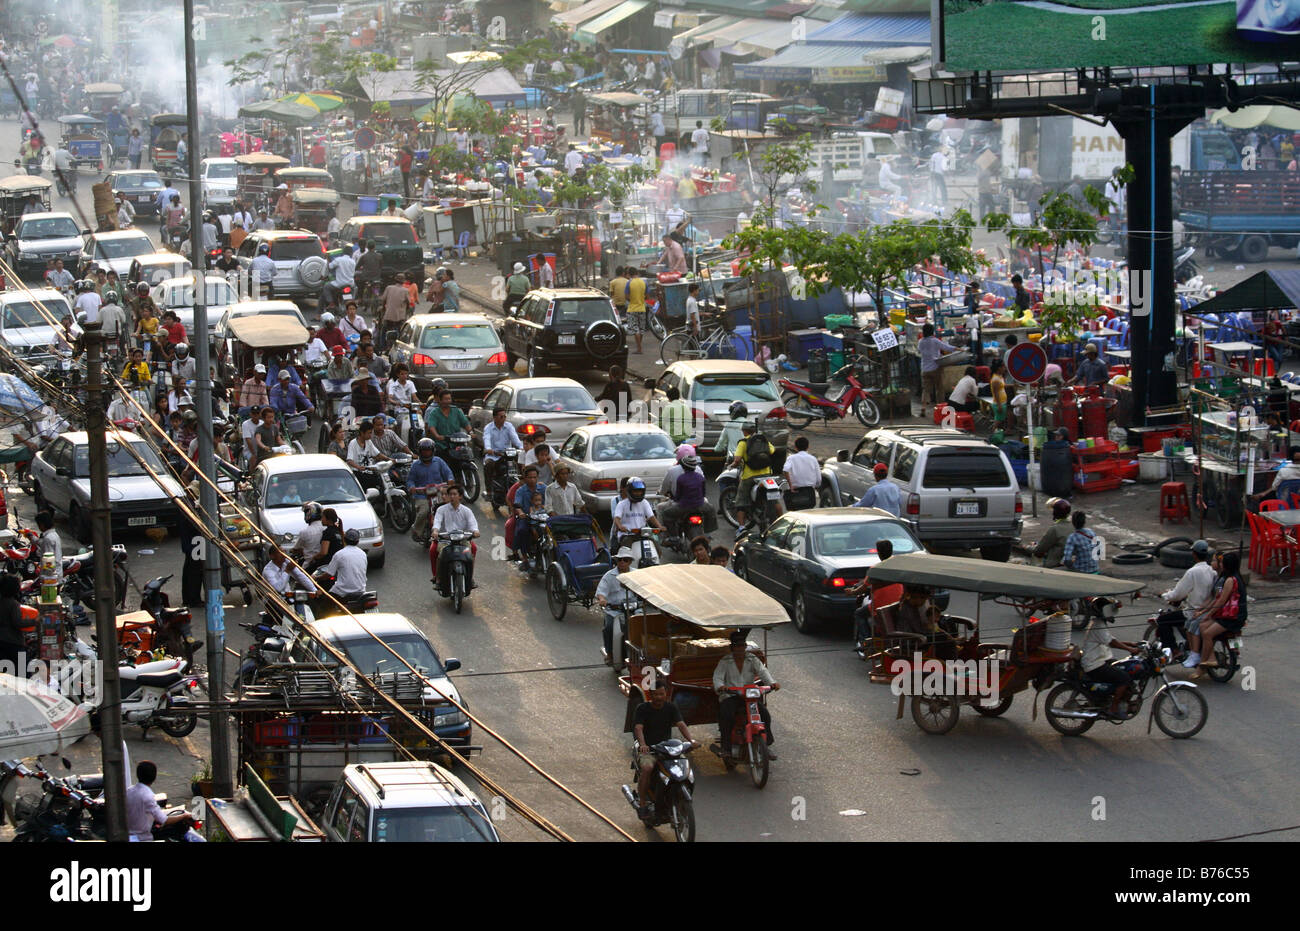 Chaos and traffic in Phnom Penh, Cambodia - Stock Image